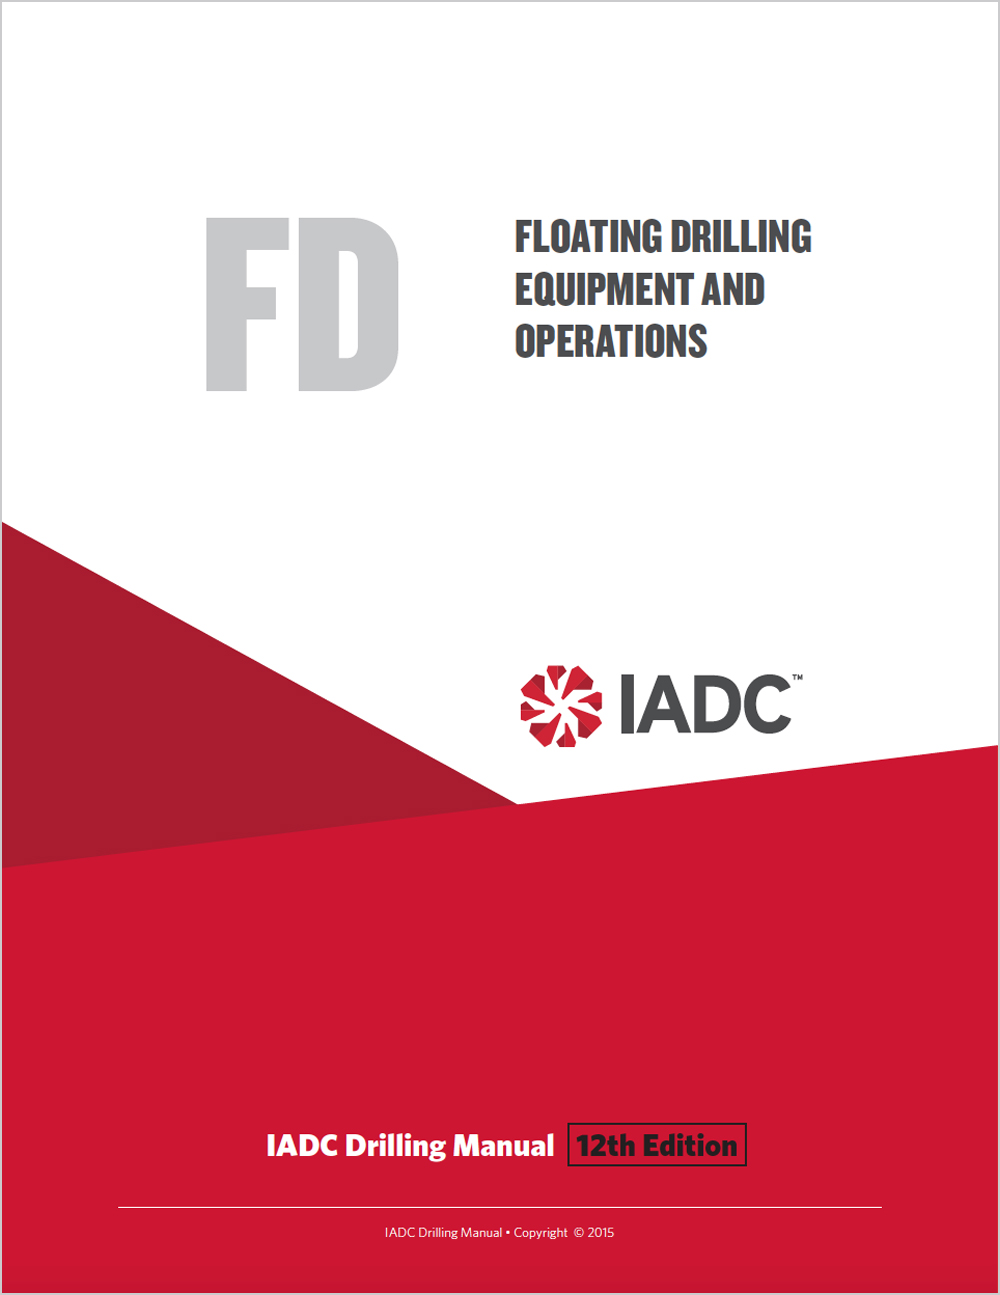 ebook floating drilling equipment and operations iadc rh iadc org Operations Manual Examples CD Manual